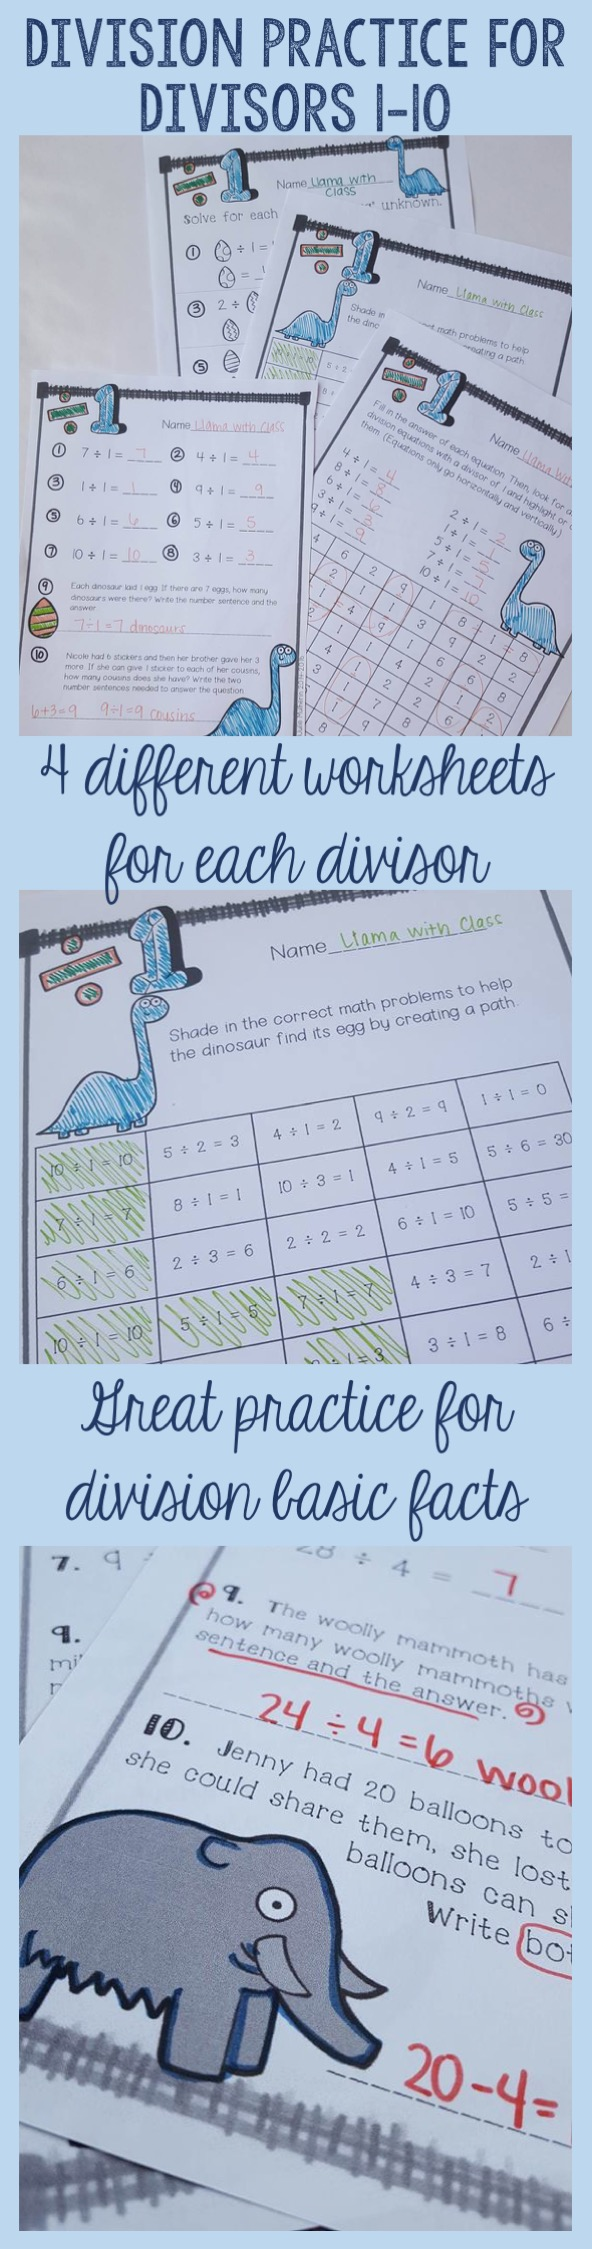 Division Facts Practice For Divisors 1-9 | Division, Worksheets and ...